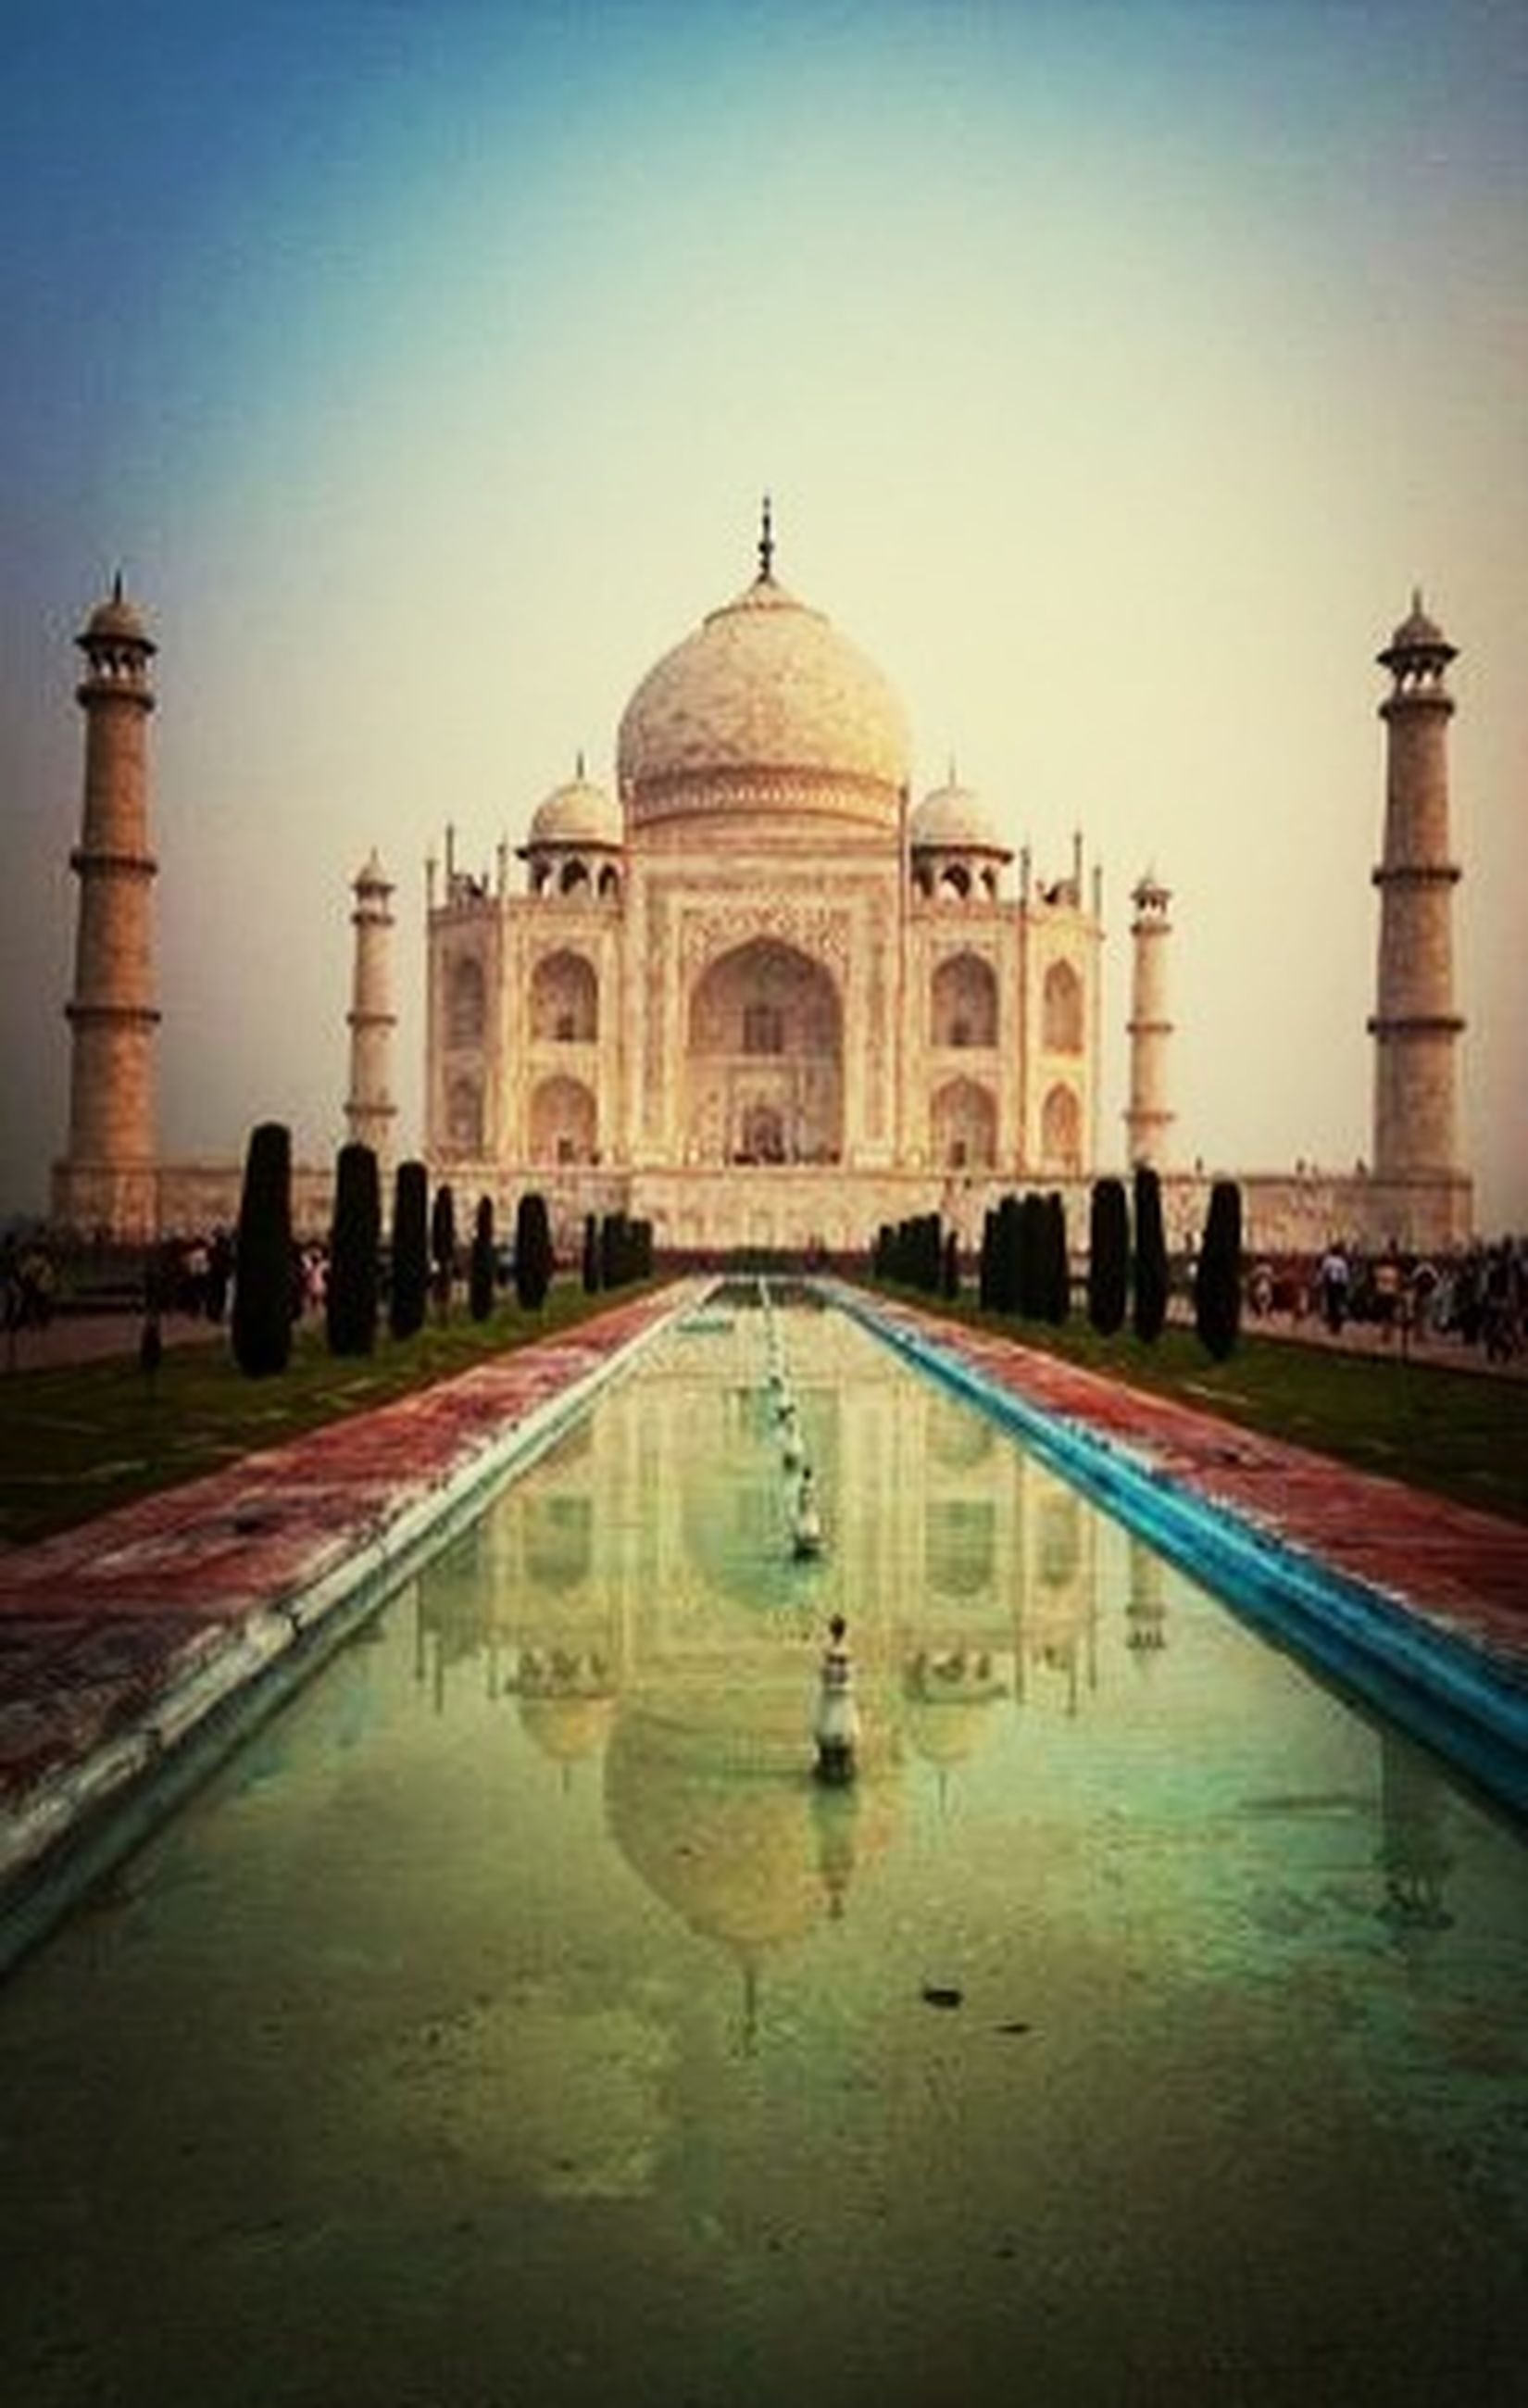 architecture, built structure, famous place, dome, travel destinations, international landmark, tourism, building exterior, travel, arch, water, history, clear sky, religion, place of worship, capital cities, islam, incidental people, taj mahal